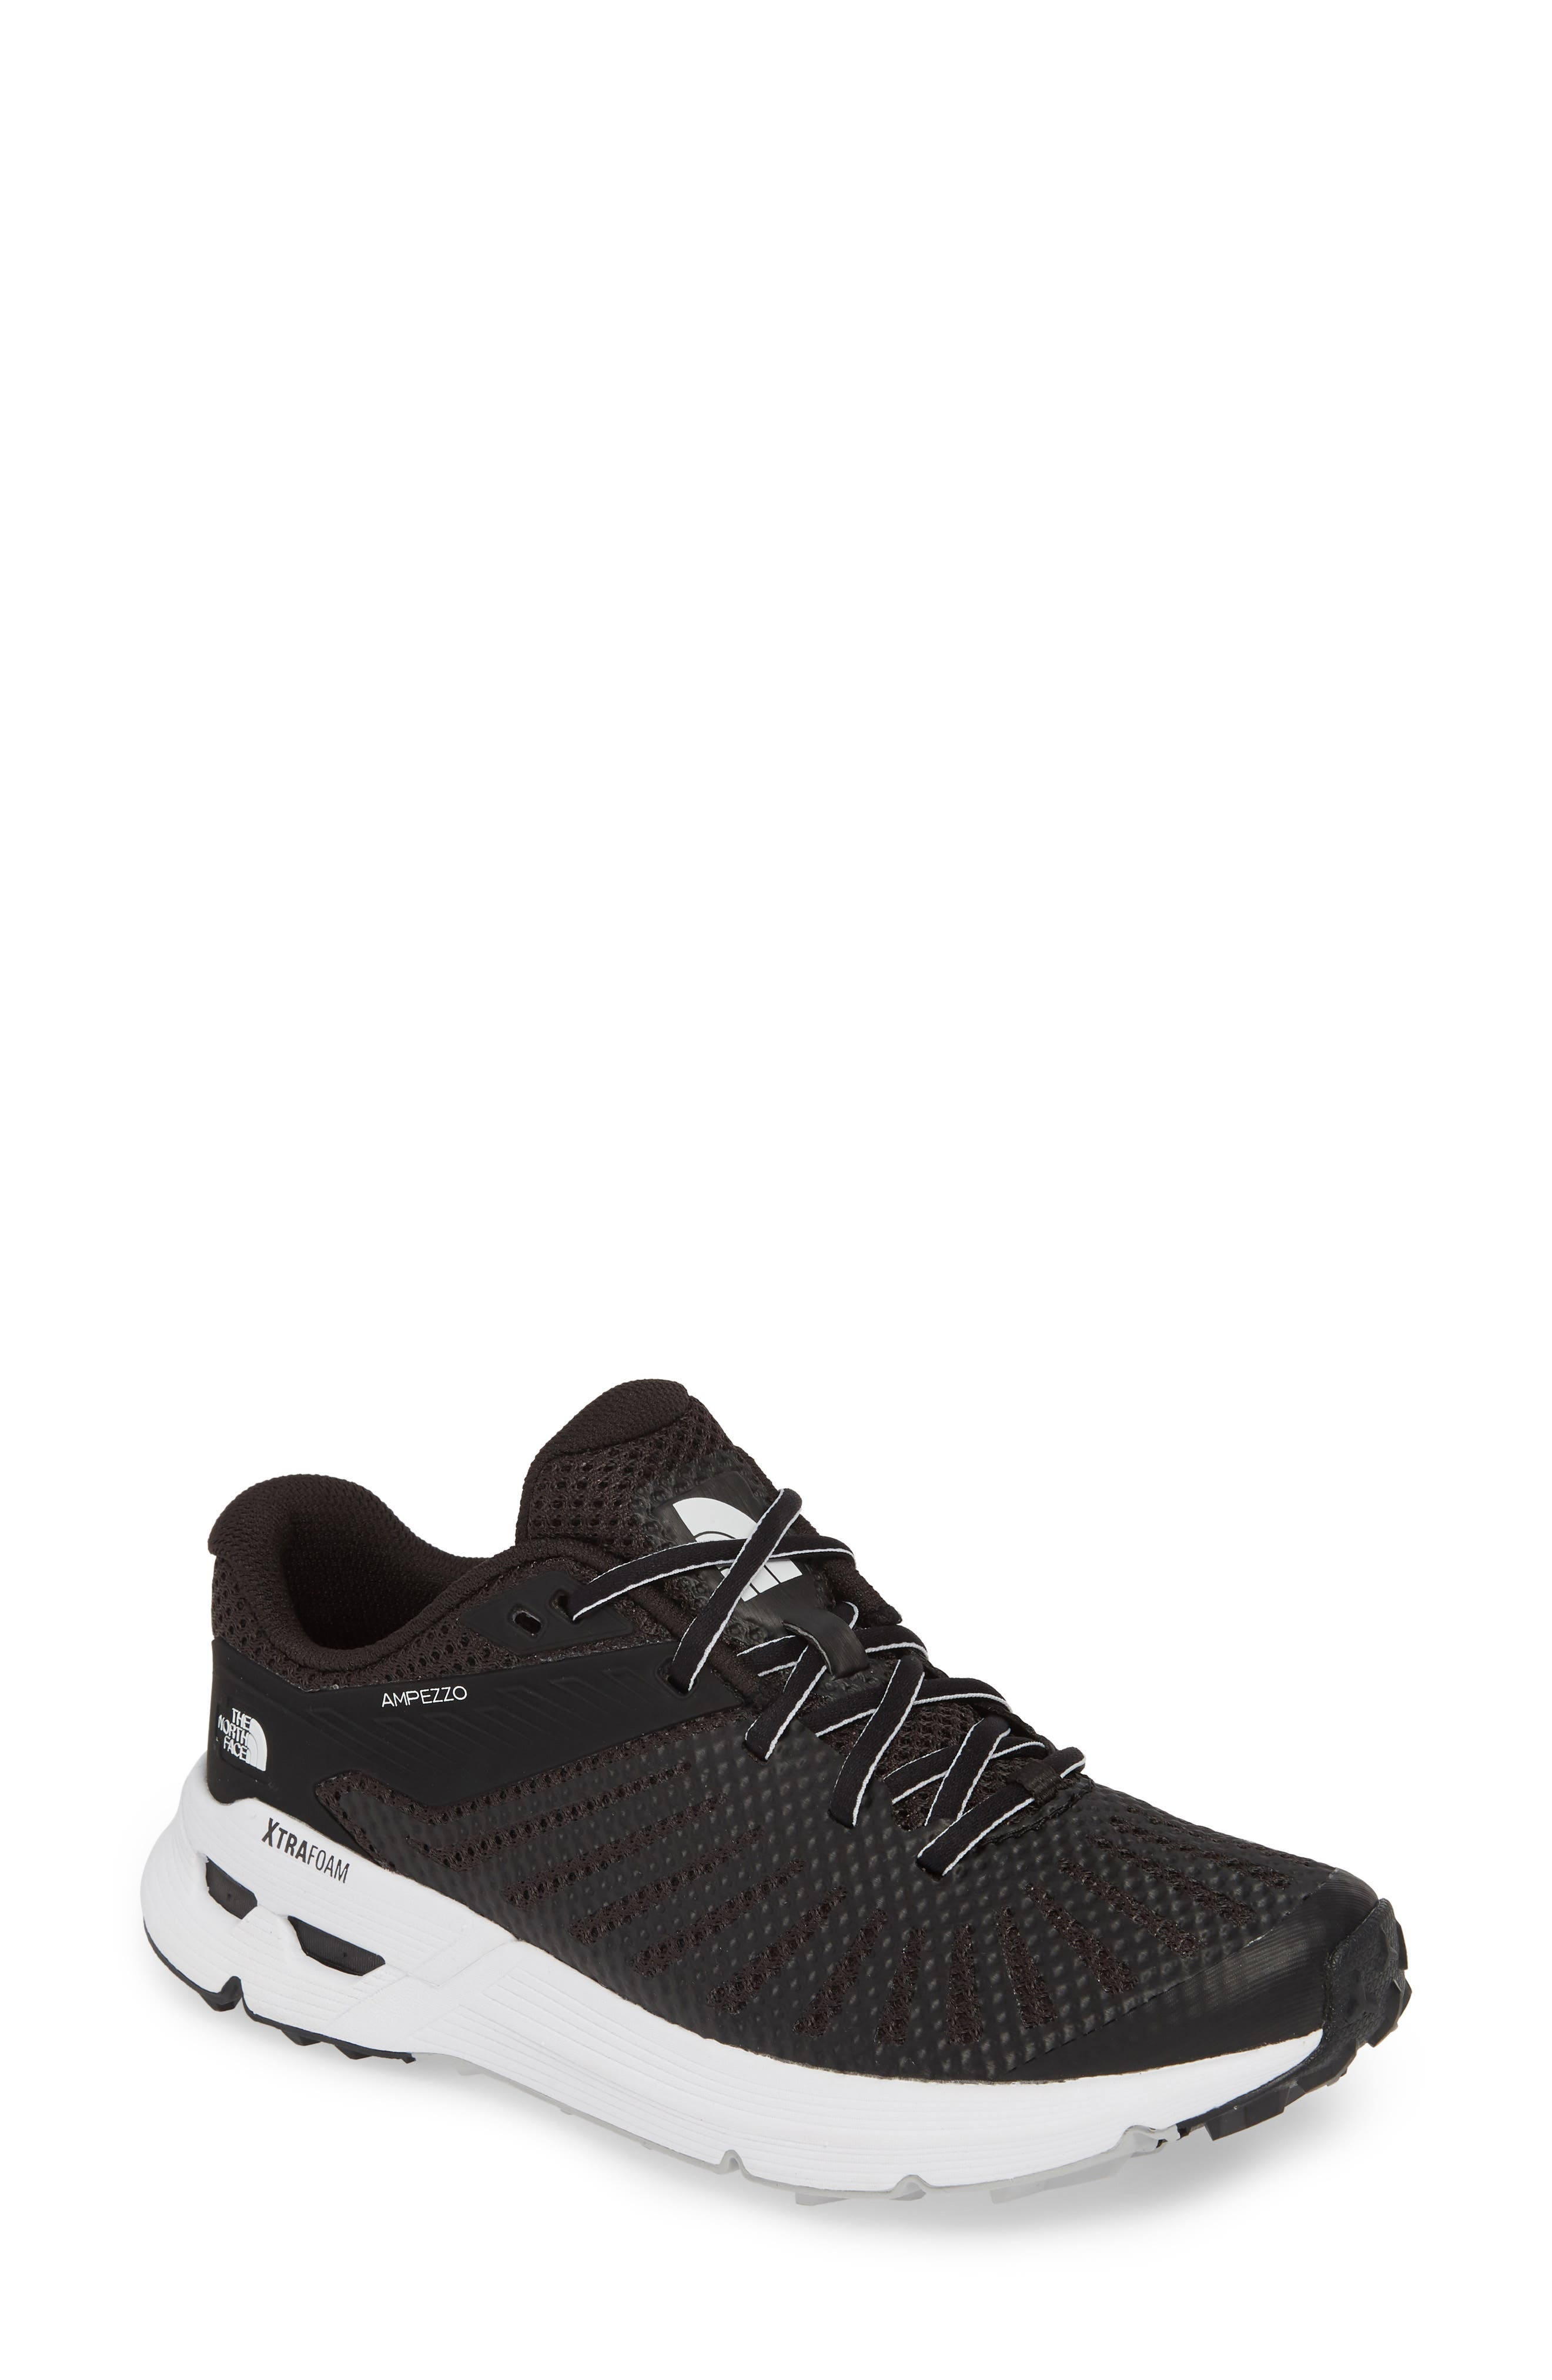 THE NORTH FACE, Ampezzo Running Shoe, Main thumbnail 1, color, BLACK/ WHITE